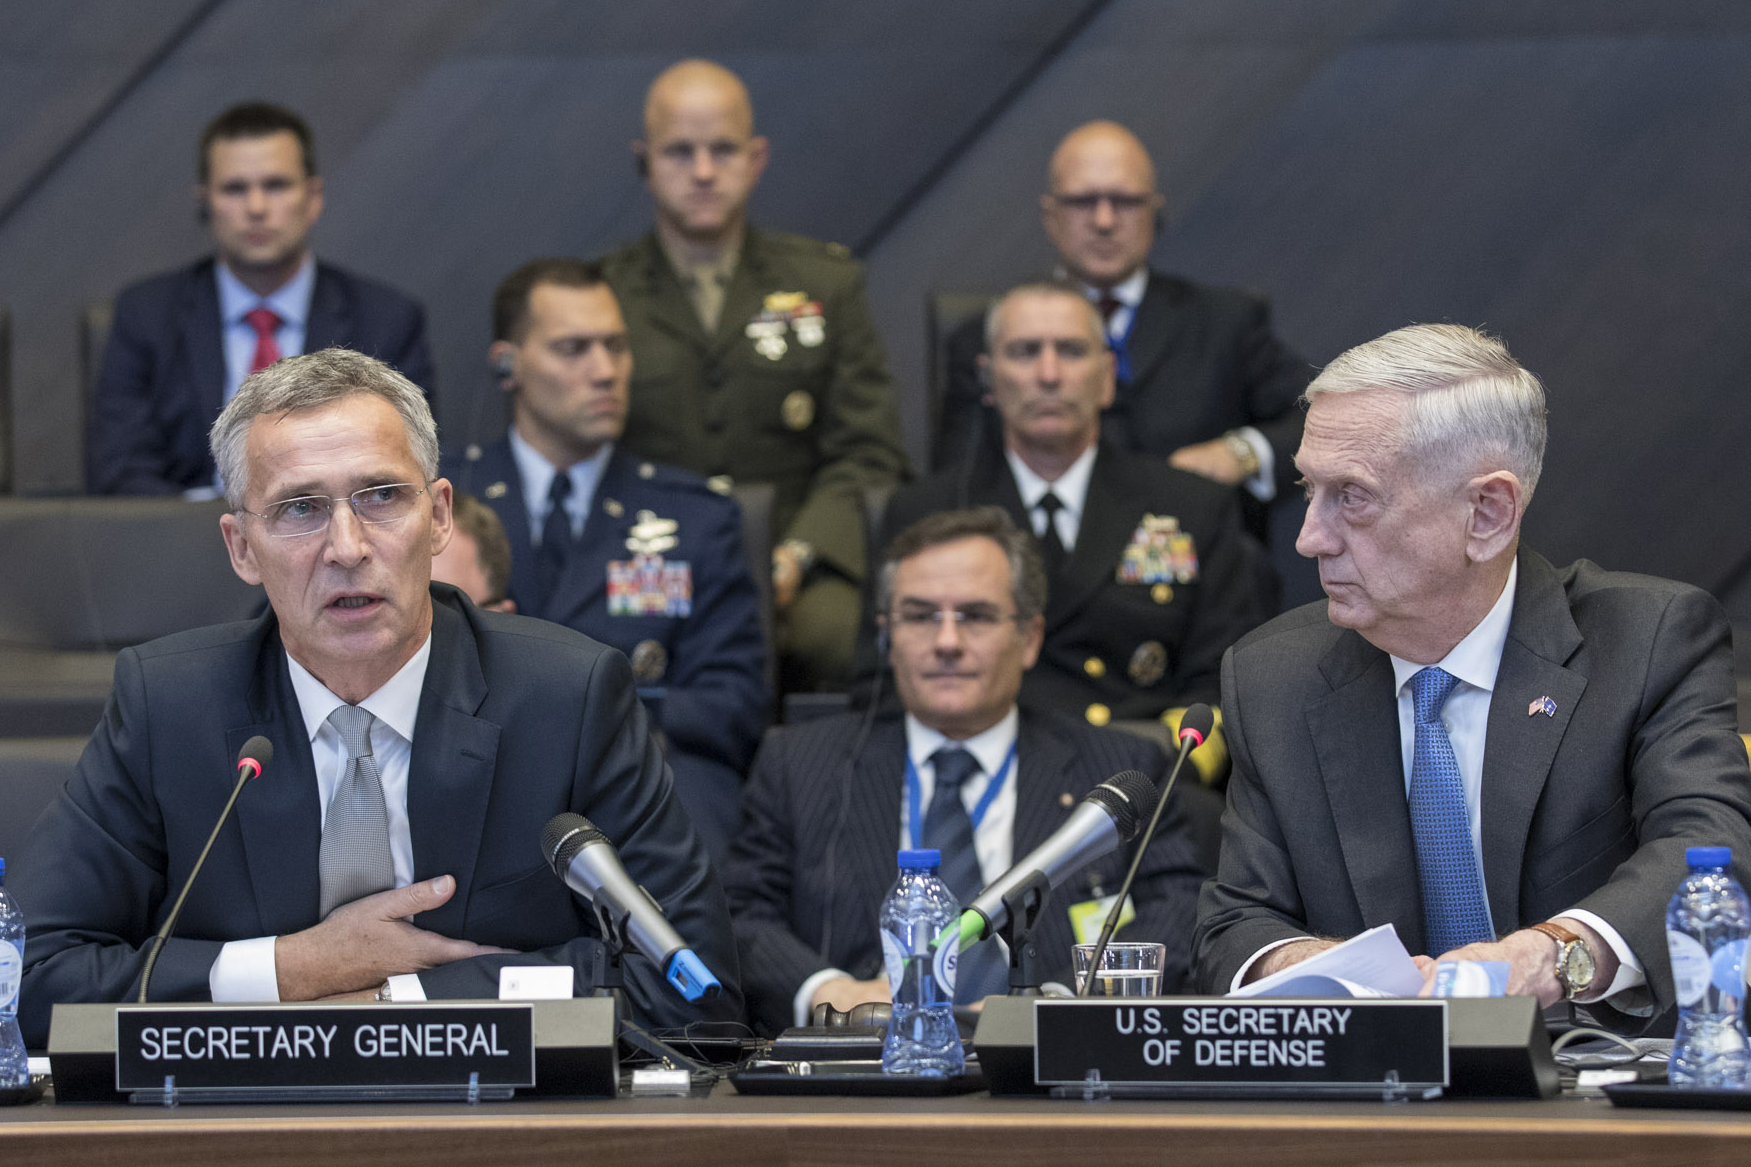 Remarks by NATO Secretary General Jens Stoltenberg Right: Jim Mattis (US Secretary of Defense)